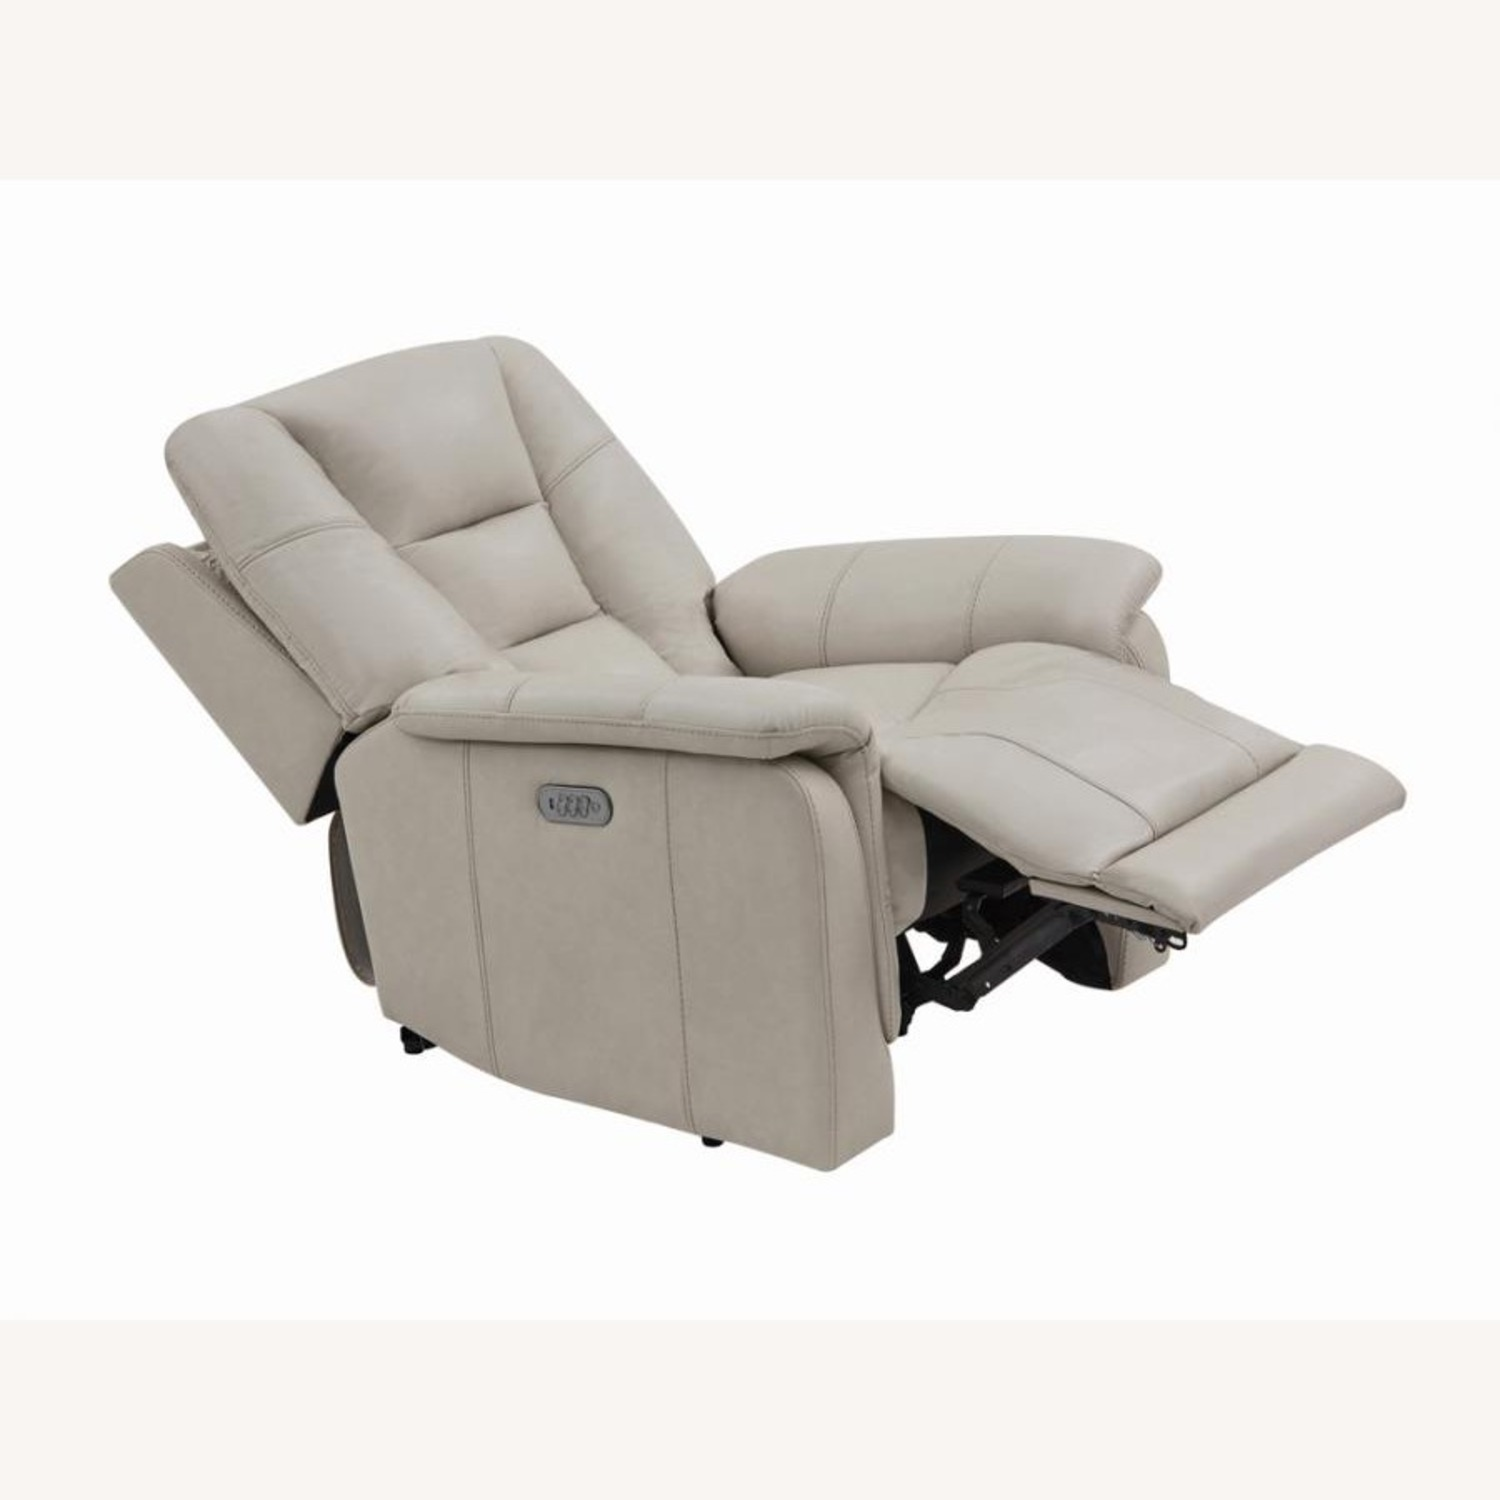 Power Recliner In Cream Top Grain Leather - image-1